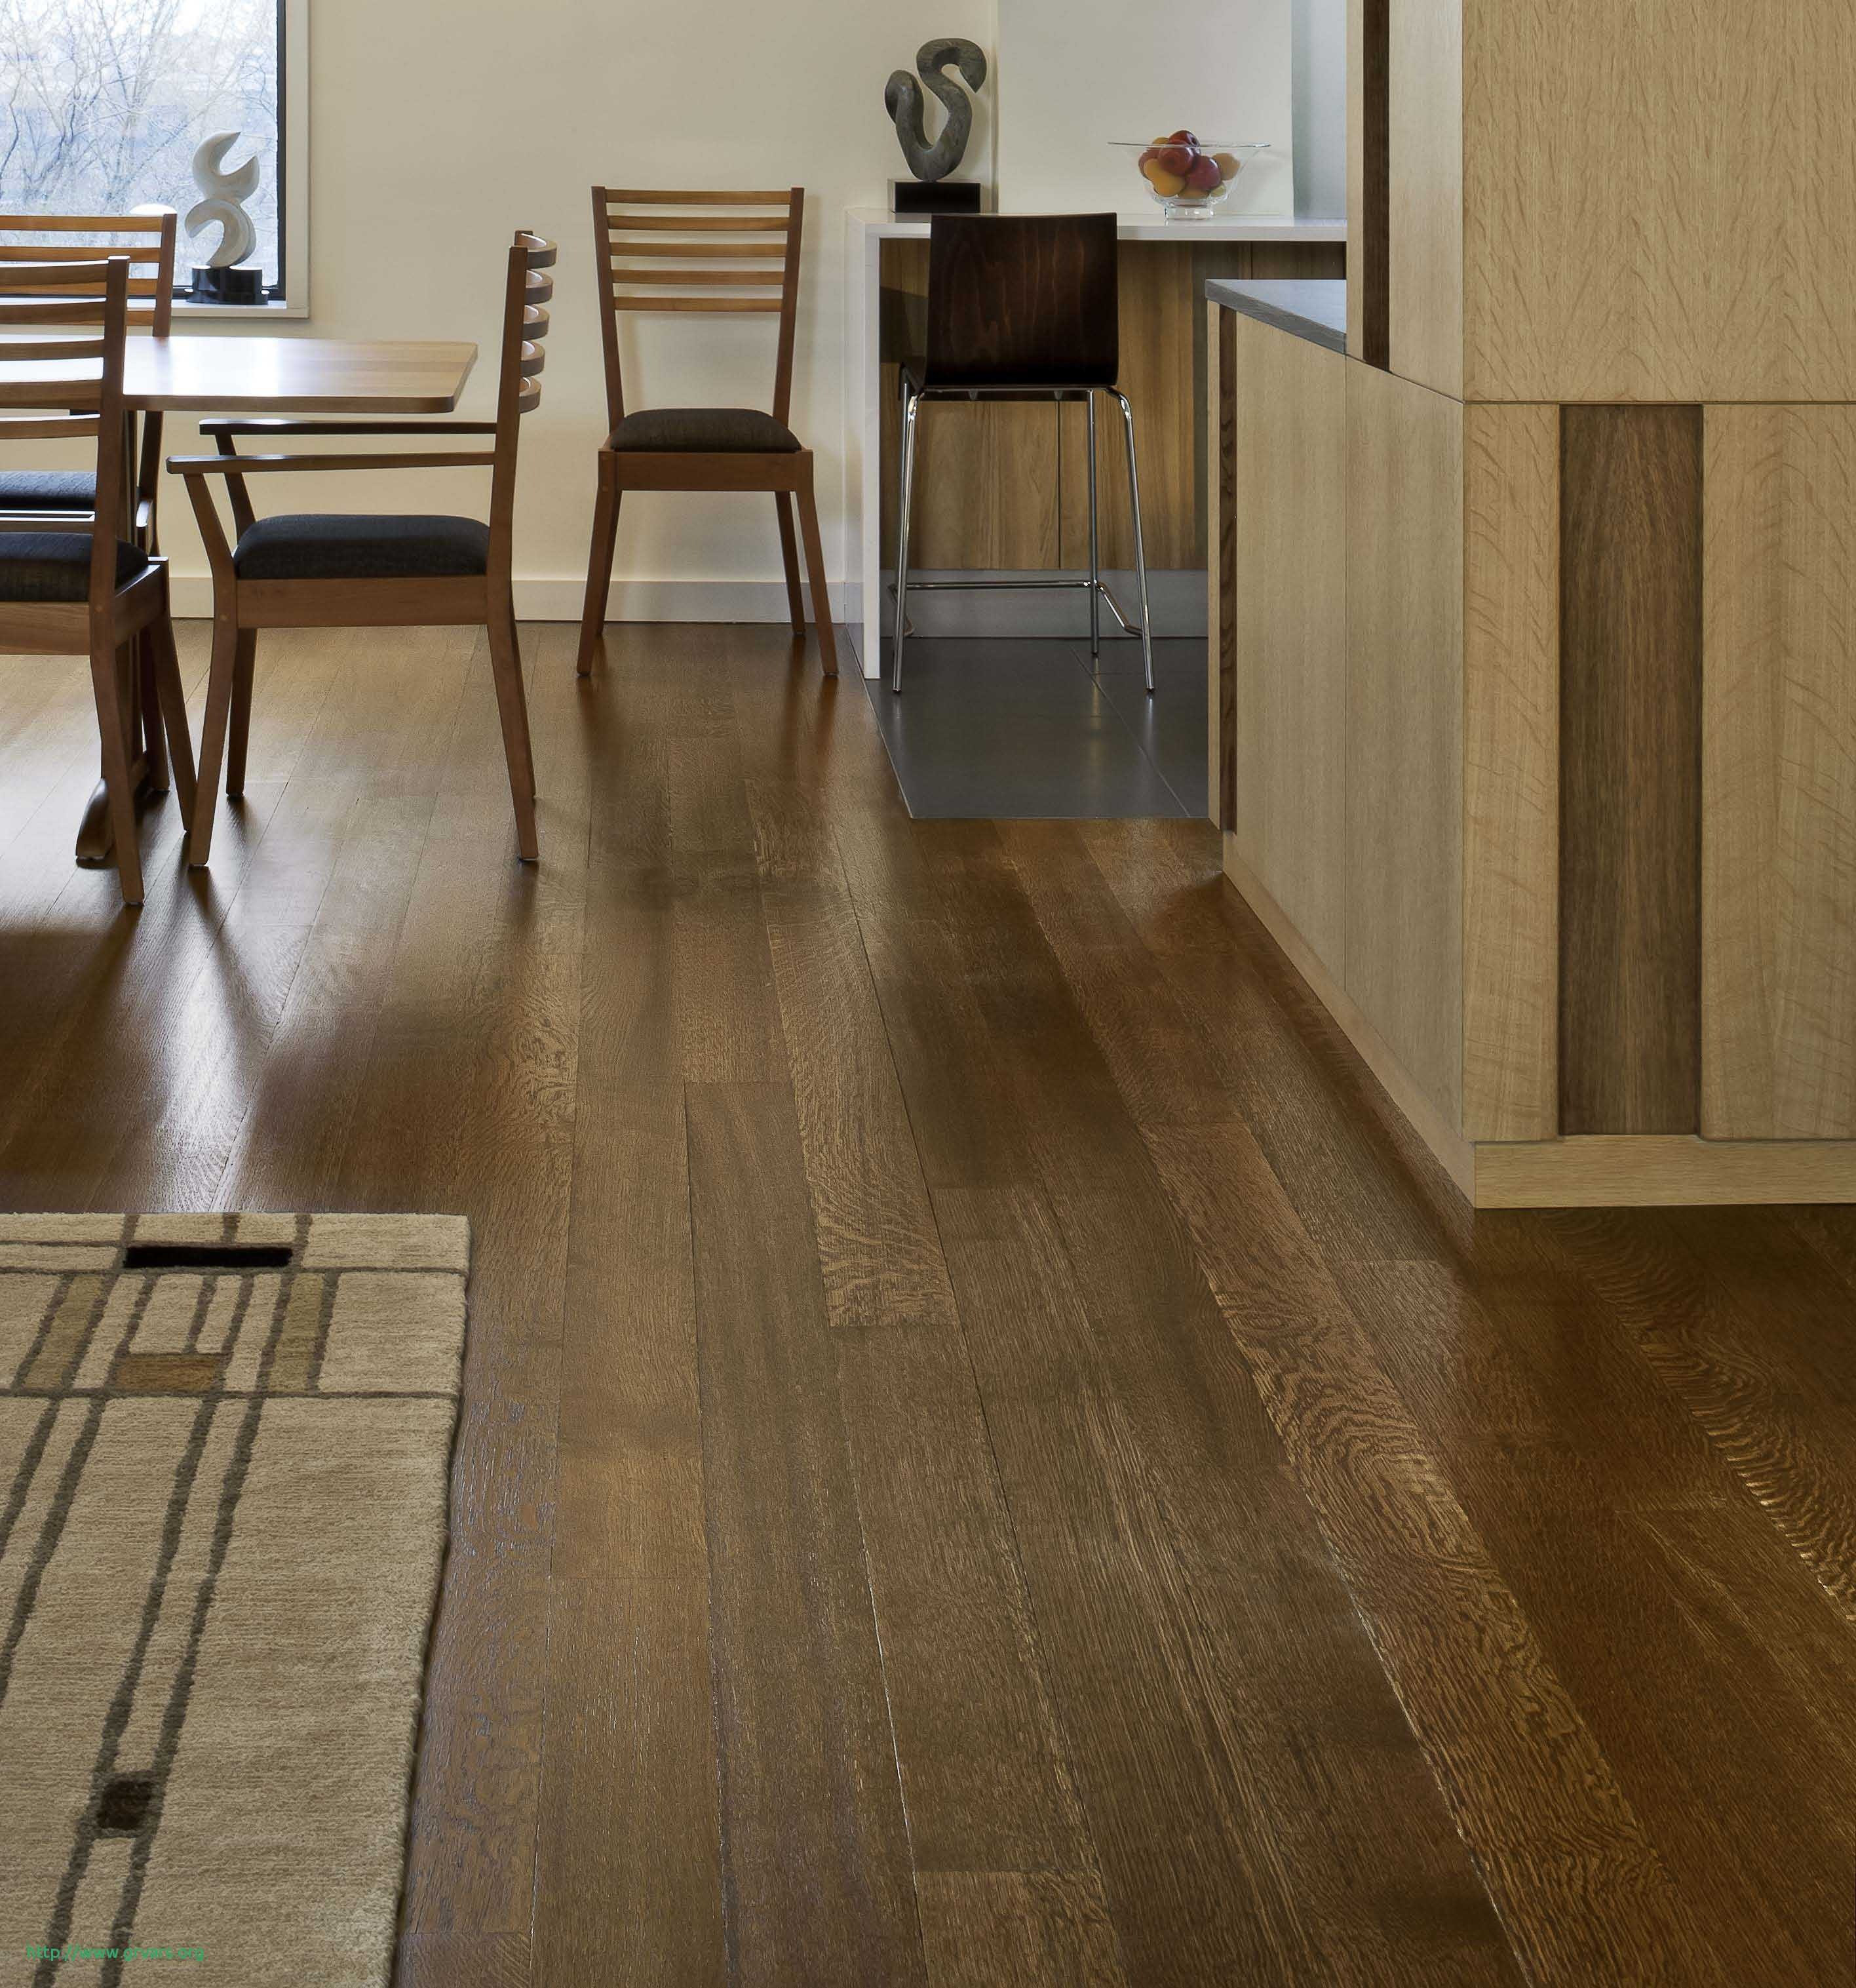 dark mahogany hardwood flooring of 38 elegant brown laminate flooring pics flooring design ideas within brown laminate flooring elegant bruce flooring customer service inspirant engaging discount hardwood stock of 38 elegant